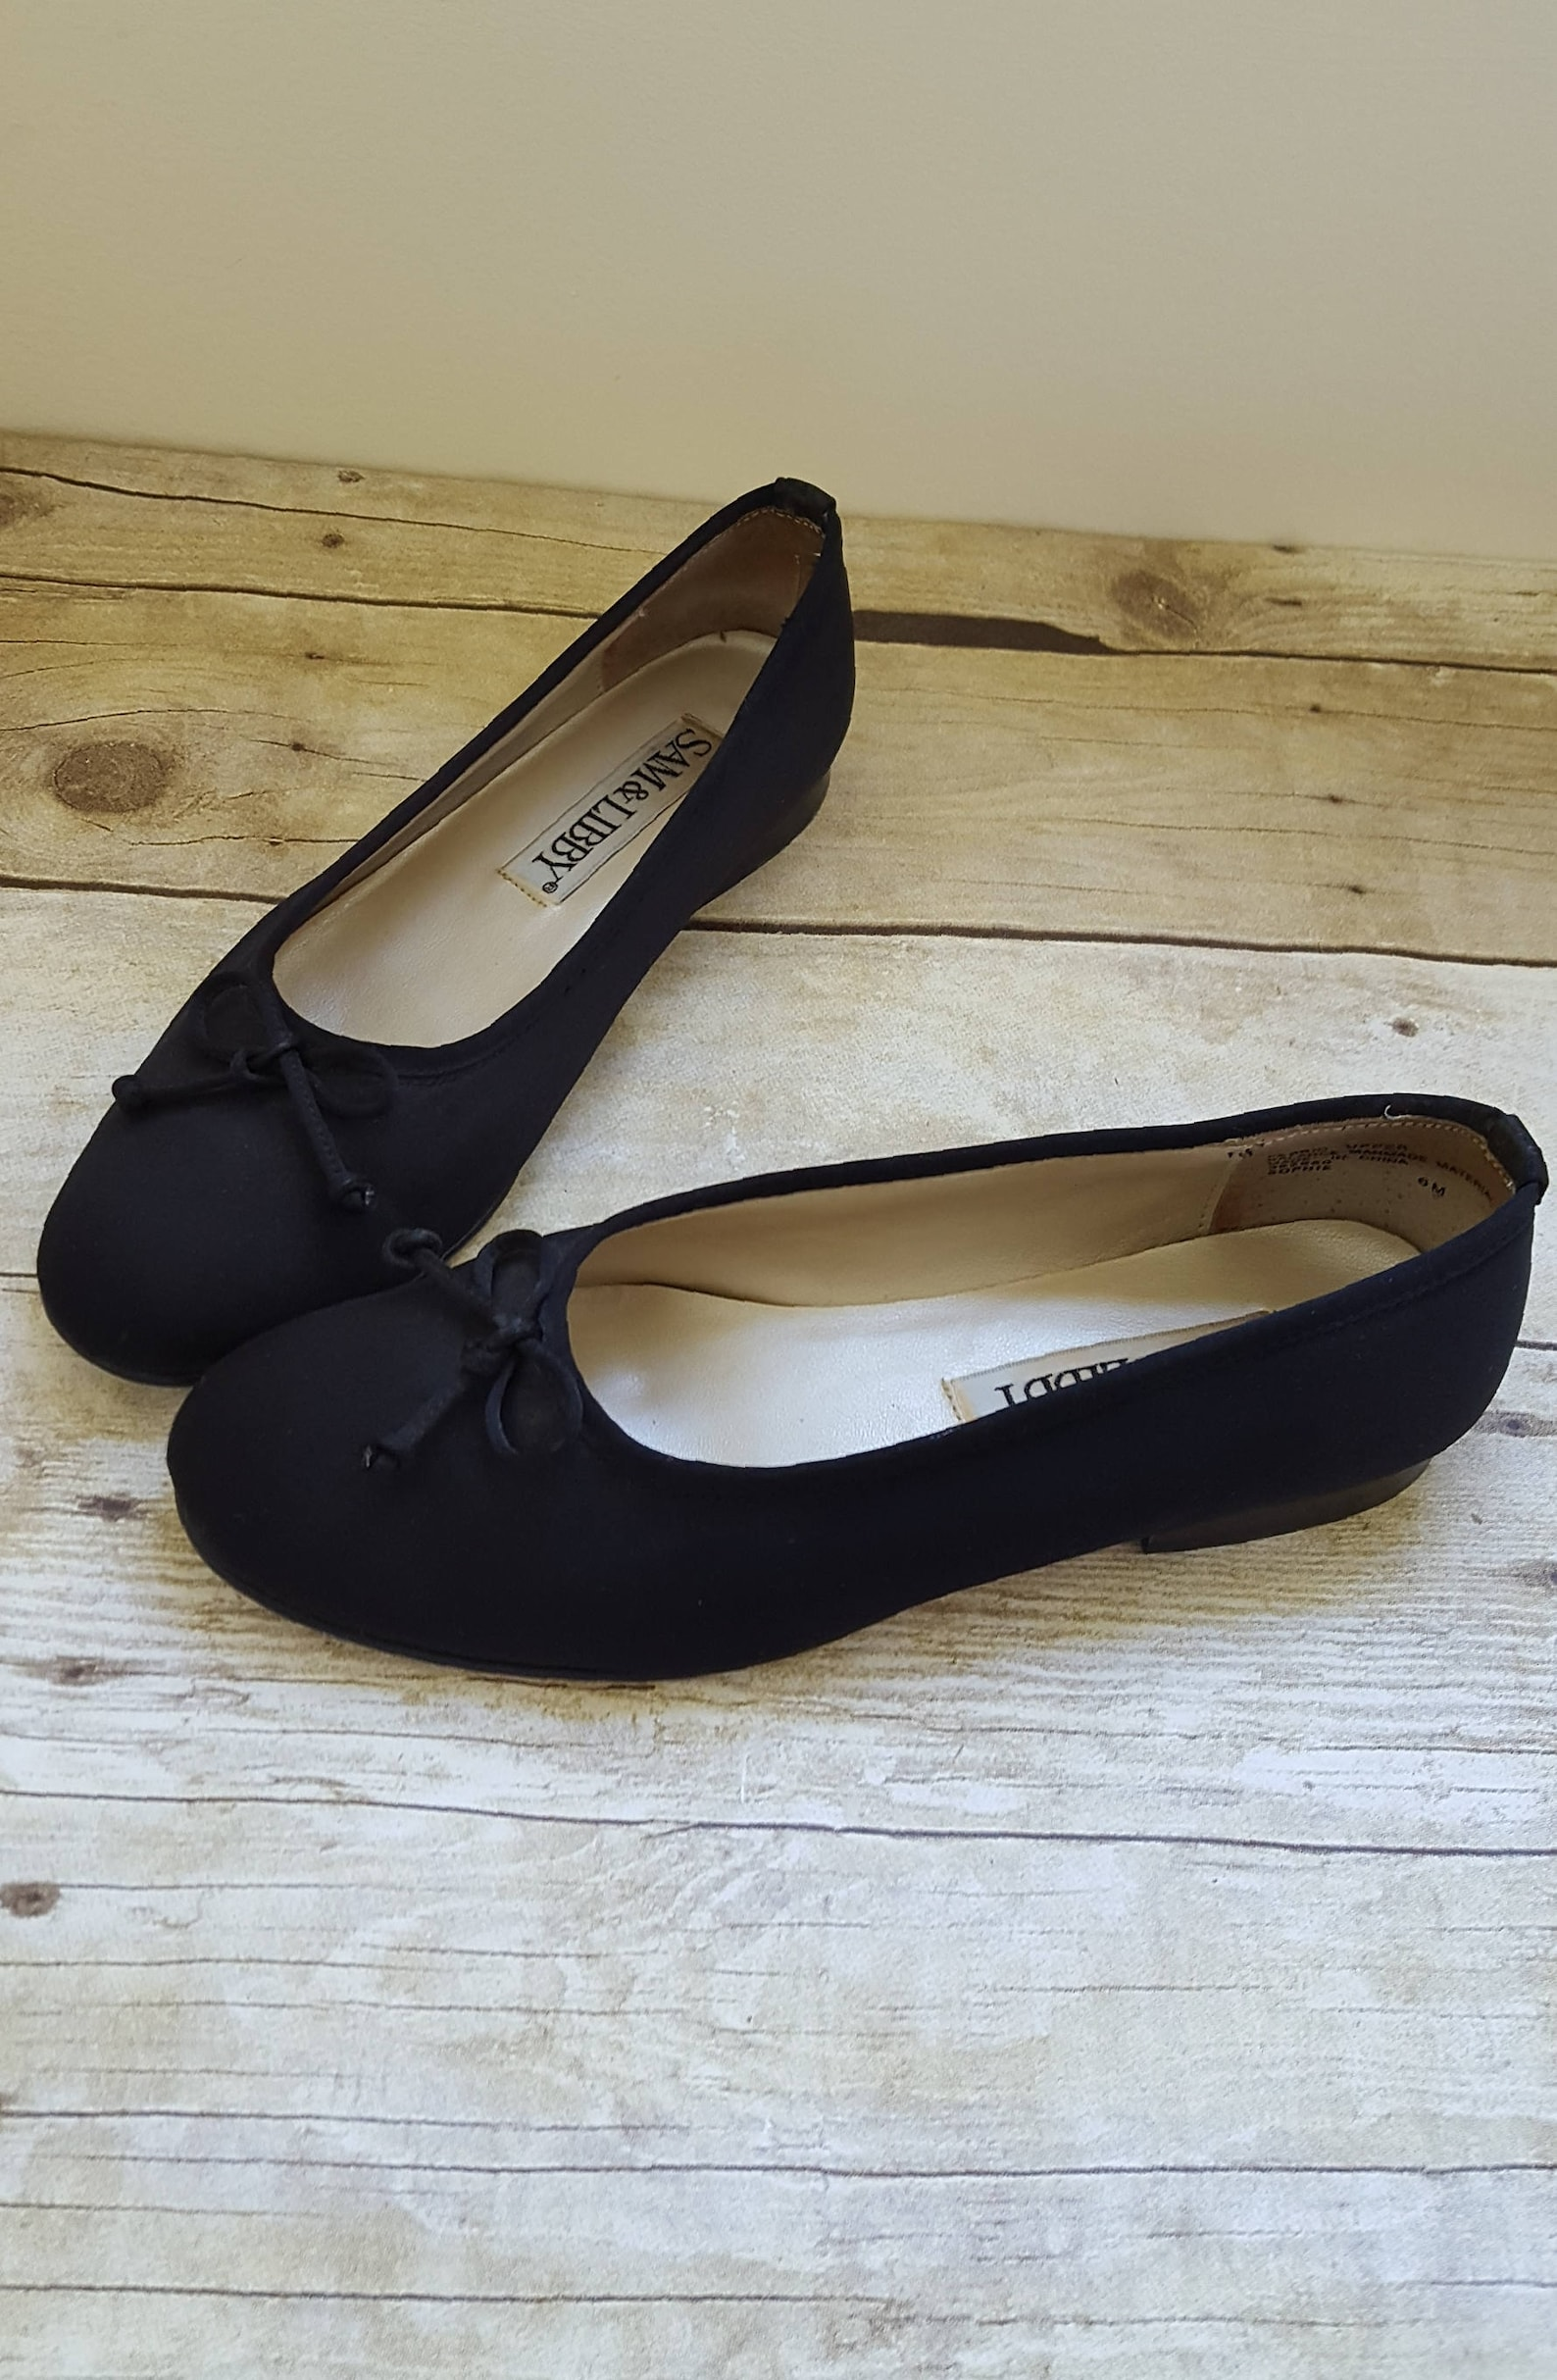 vintage sam and libby black flats, simple black slip-ons with bow detail, size 6 ballet flats, gift for her